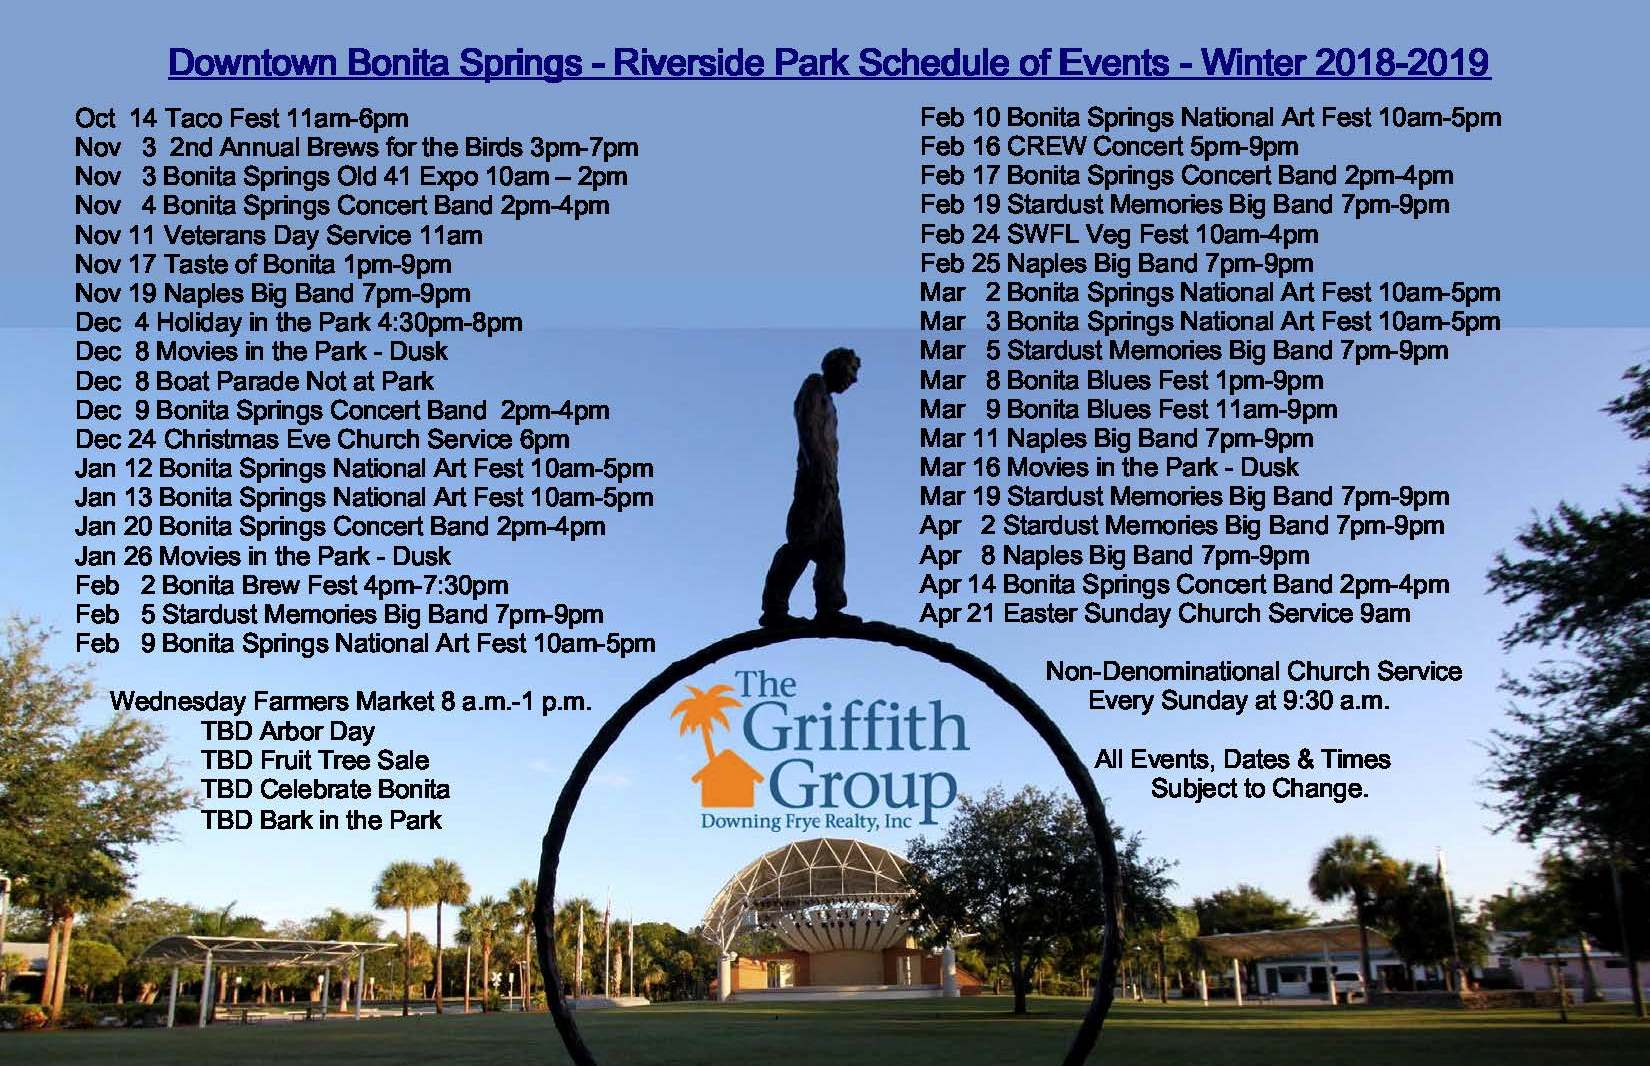 Bonita Springs Calendar of Events 2018-2019